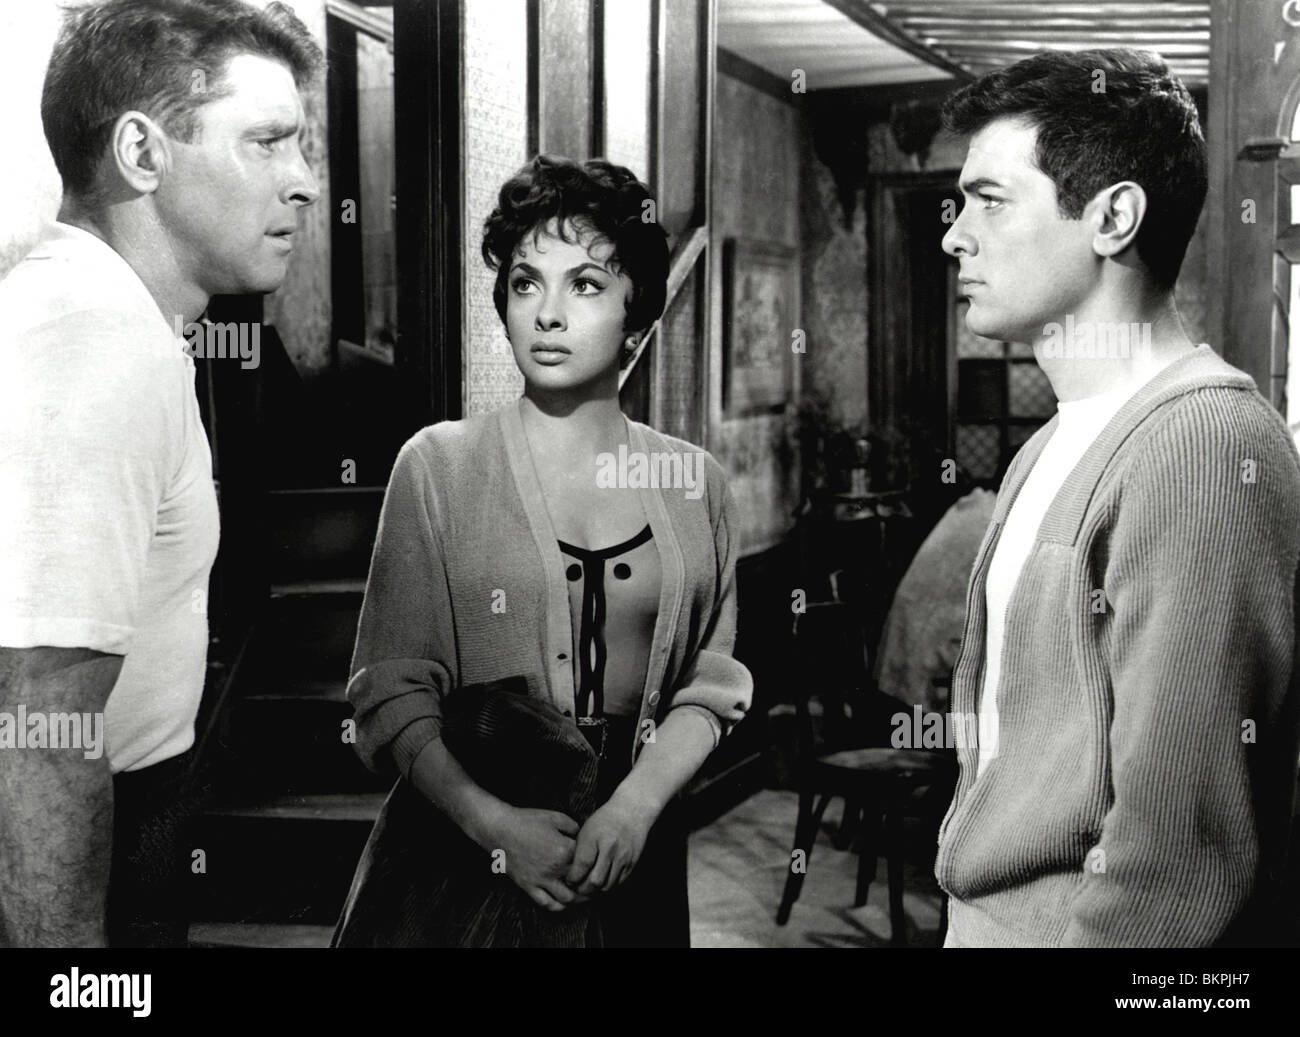 trapeze 1956 burt lancaster gina lollobrigida tony curtis tpz stock photo 29386371 alamy. Black Bedroom Furniture Sets. Home Design Ideas